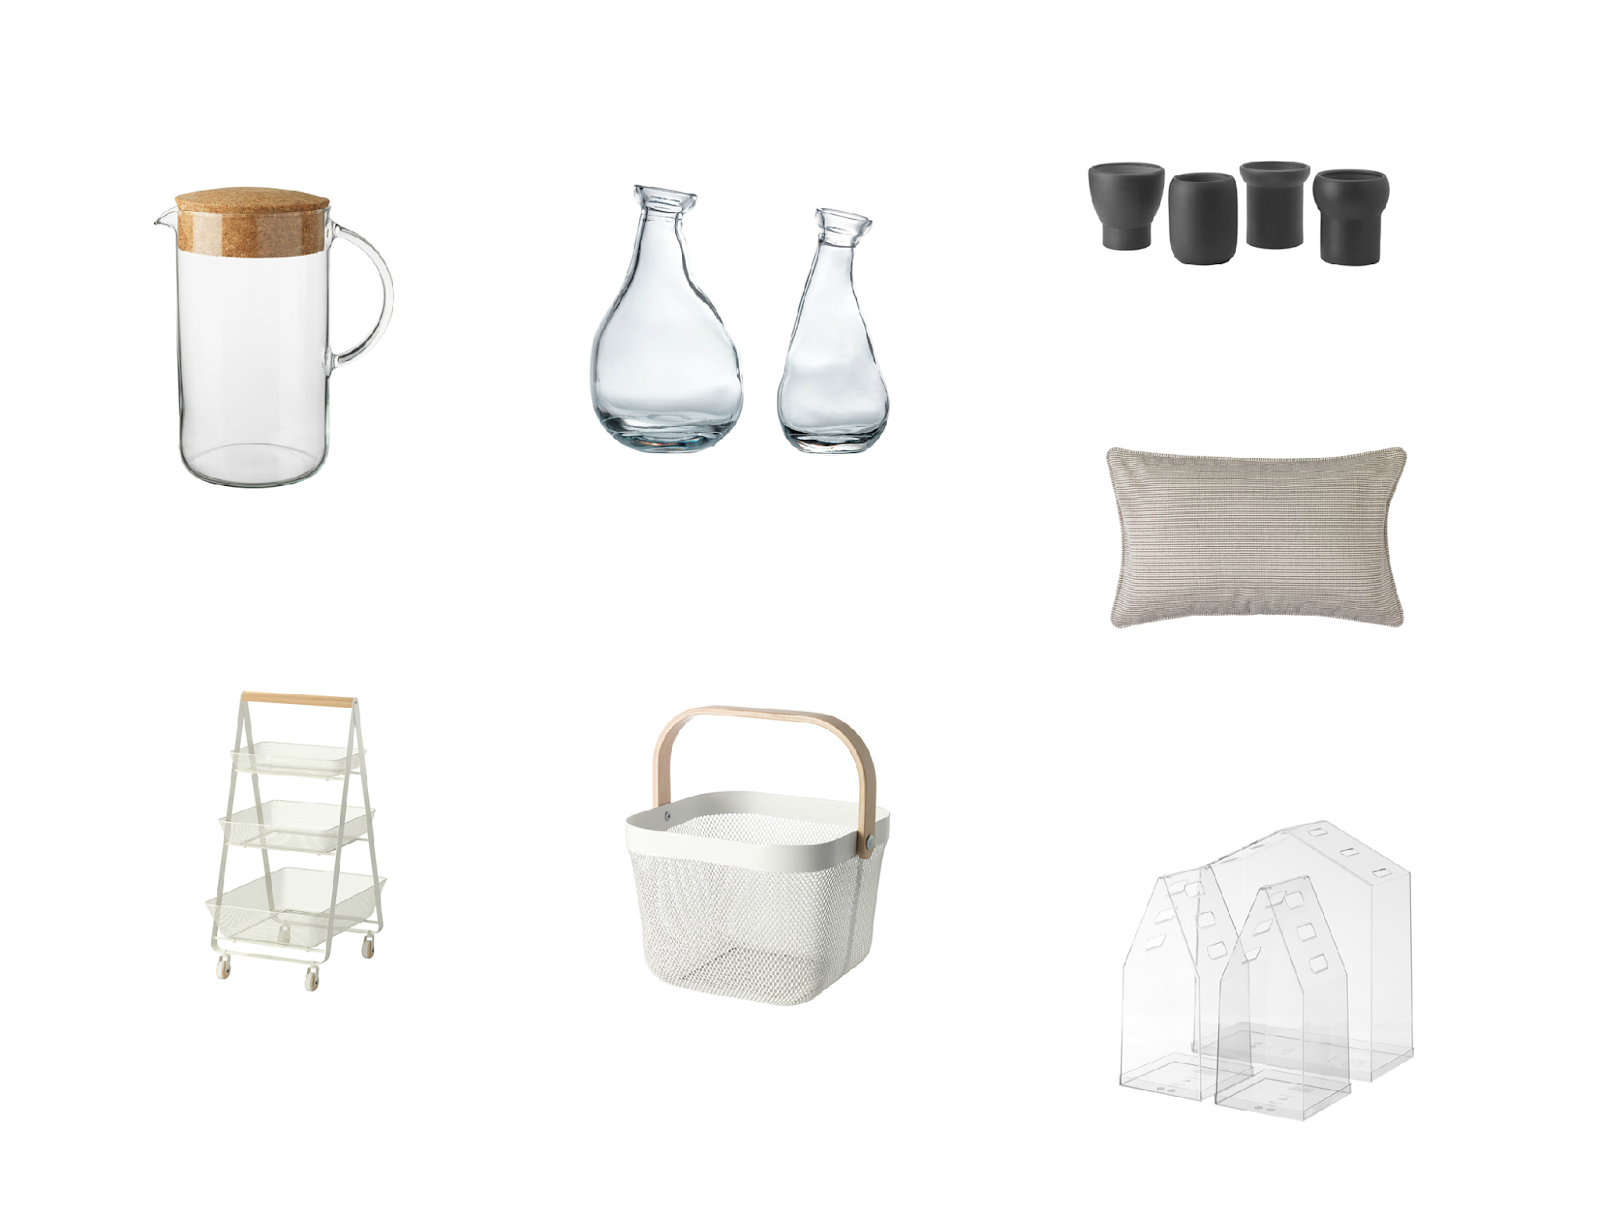 Ila points decor nuovo catalogo ikea 2016 for Catalogo ikea nuovo